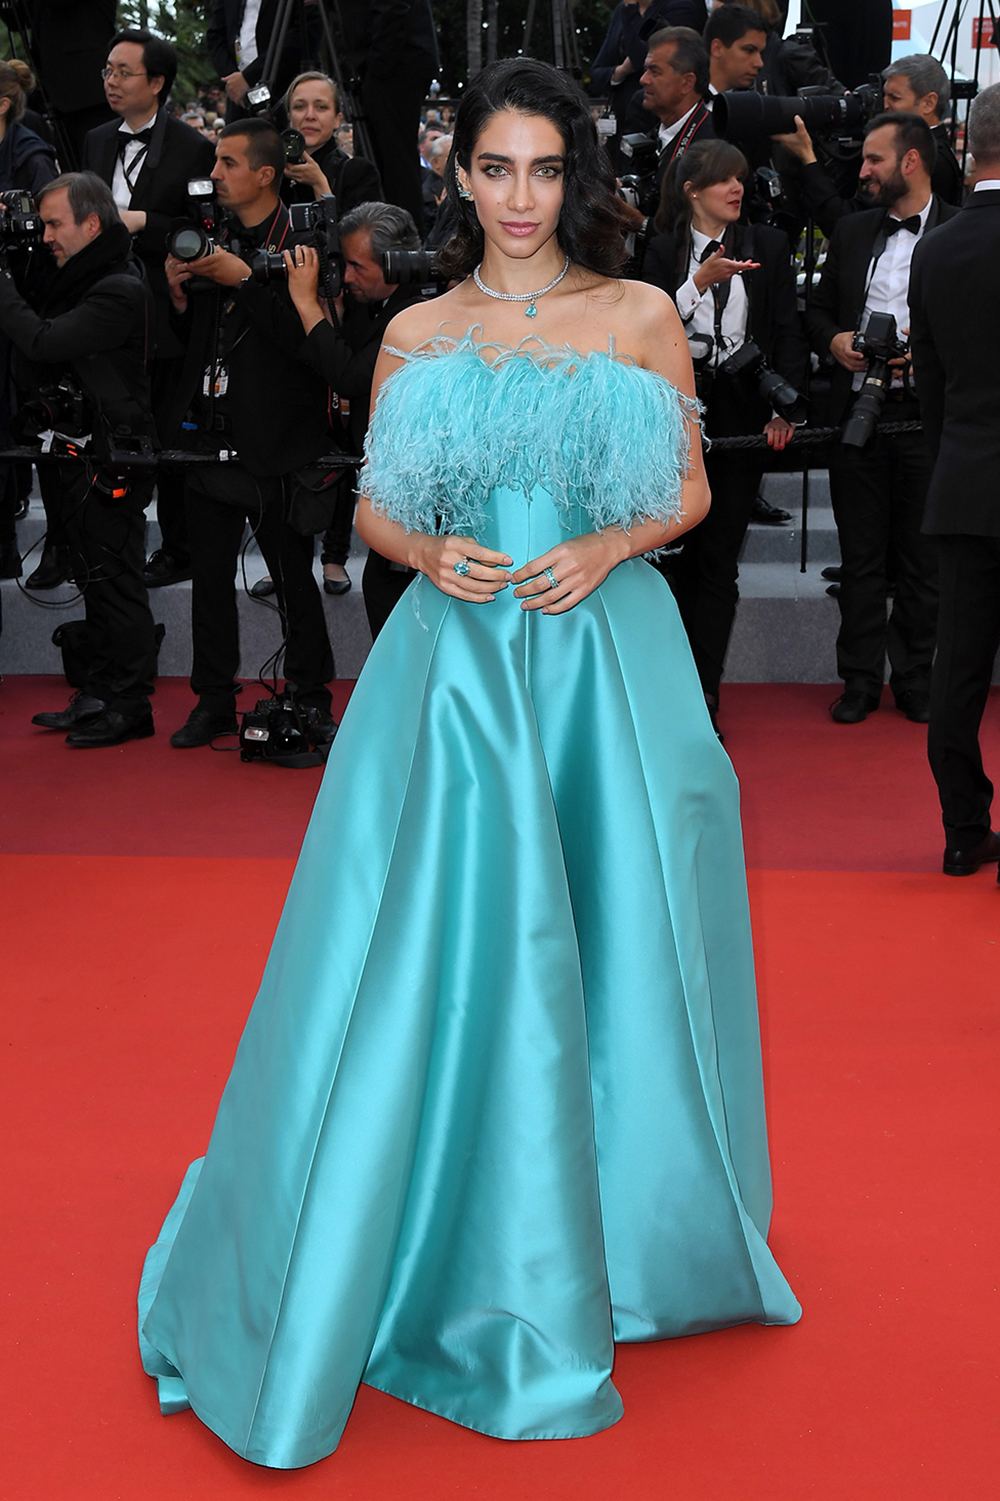 Cannes Film Festival 2019: All the Arab Stars Who Have Been Lighting Up the Red Carpet